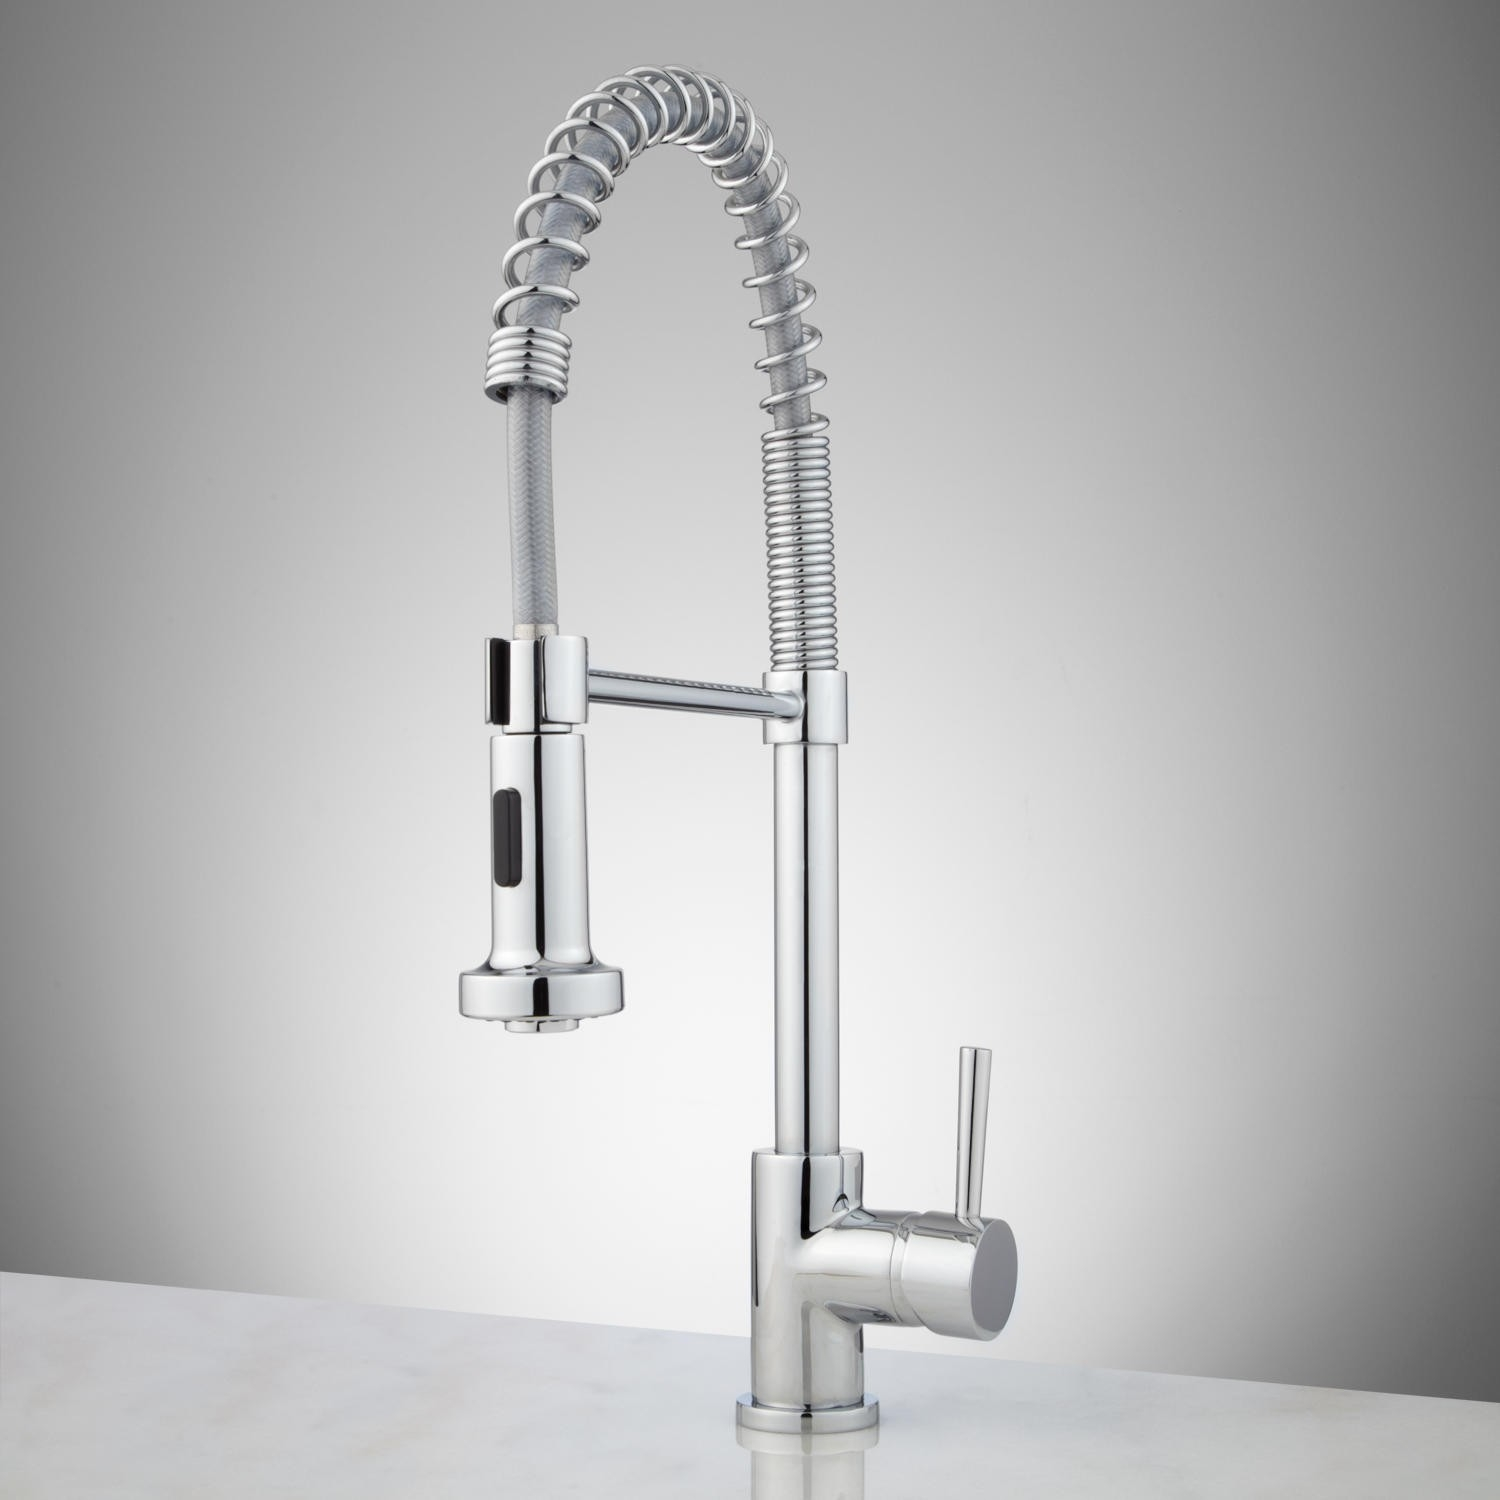 Ideas, types of aerators for faucets types of aerators for faucets faucet high flow kitchen trends and aerator pictures example photo 1500 x 1500  .